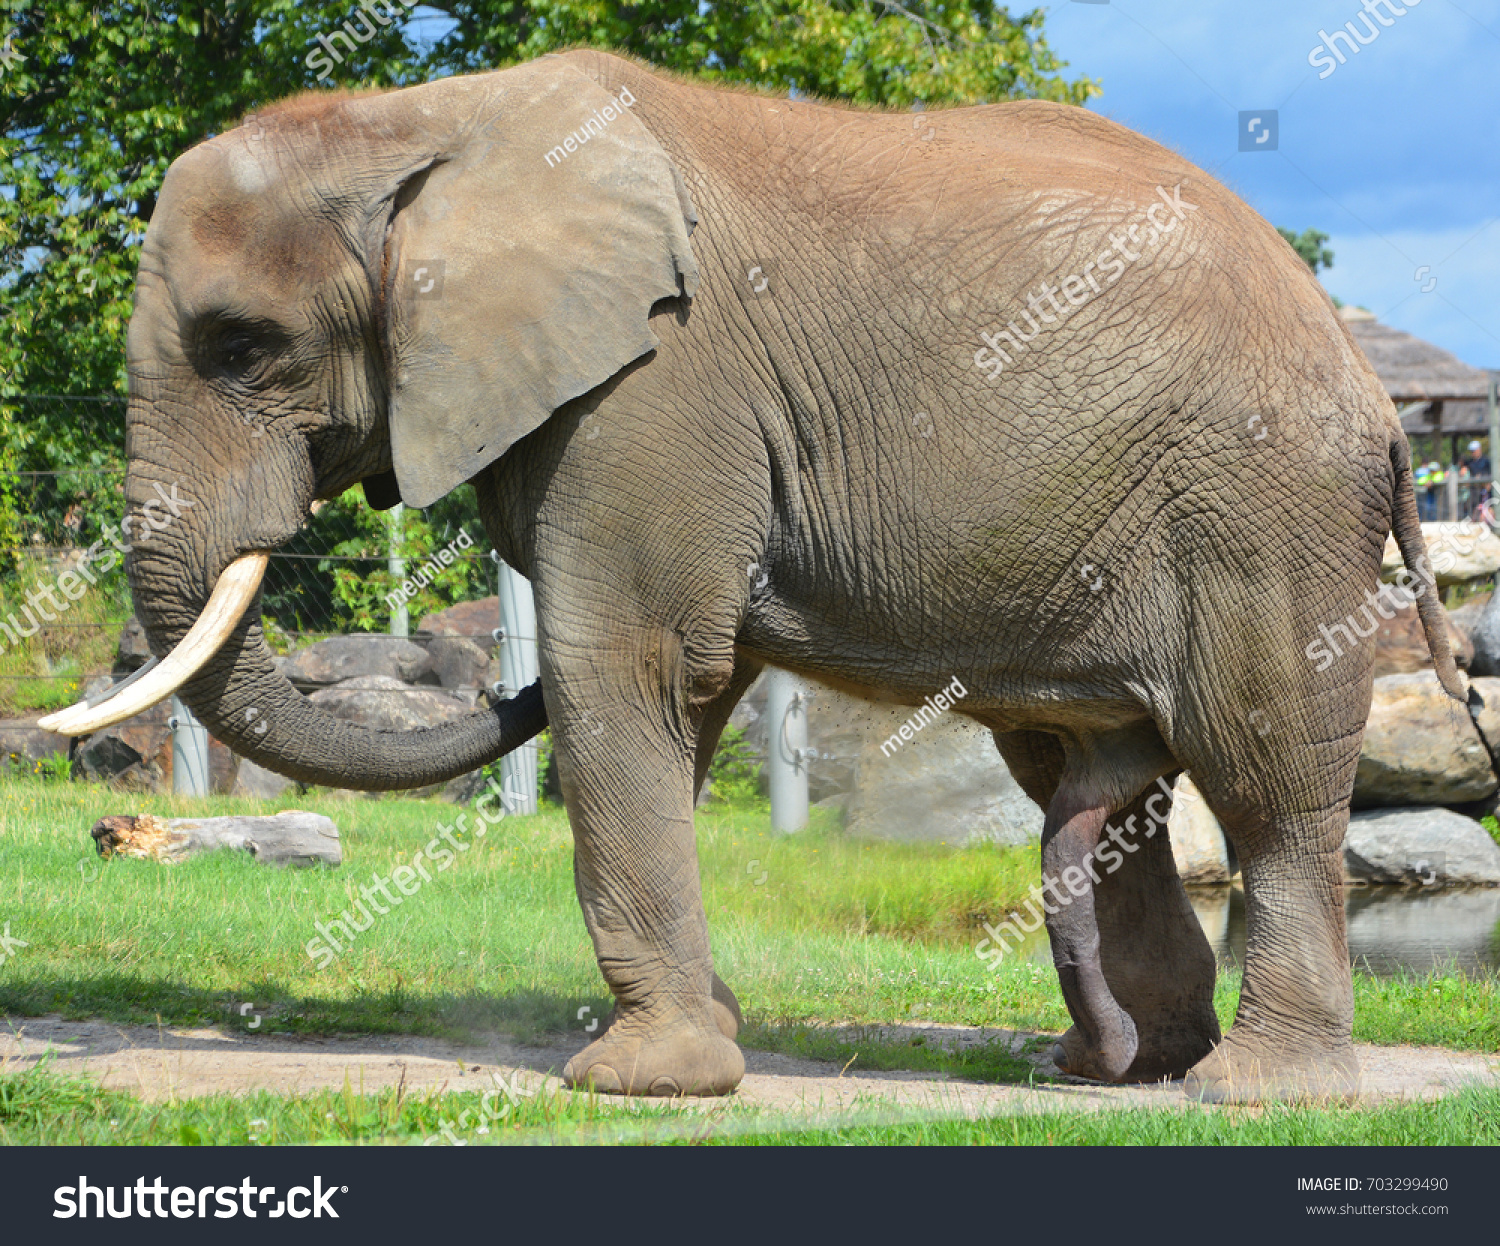 Are Elephants Mammals >> Elephants Large Mammals Family Elephantidae Order Stock Photo Edit